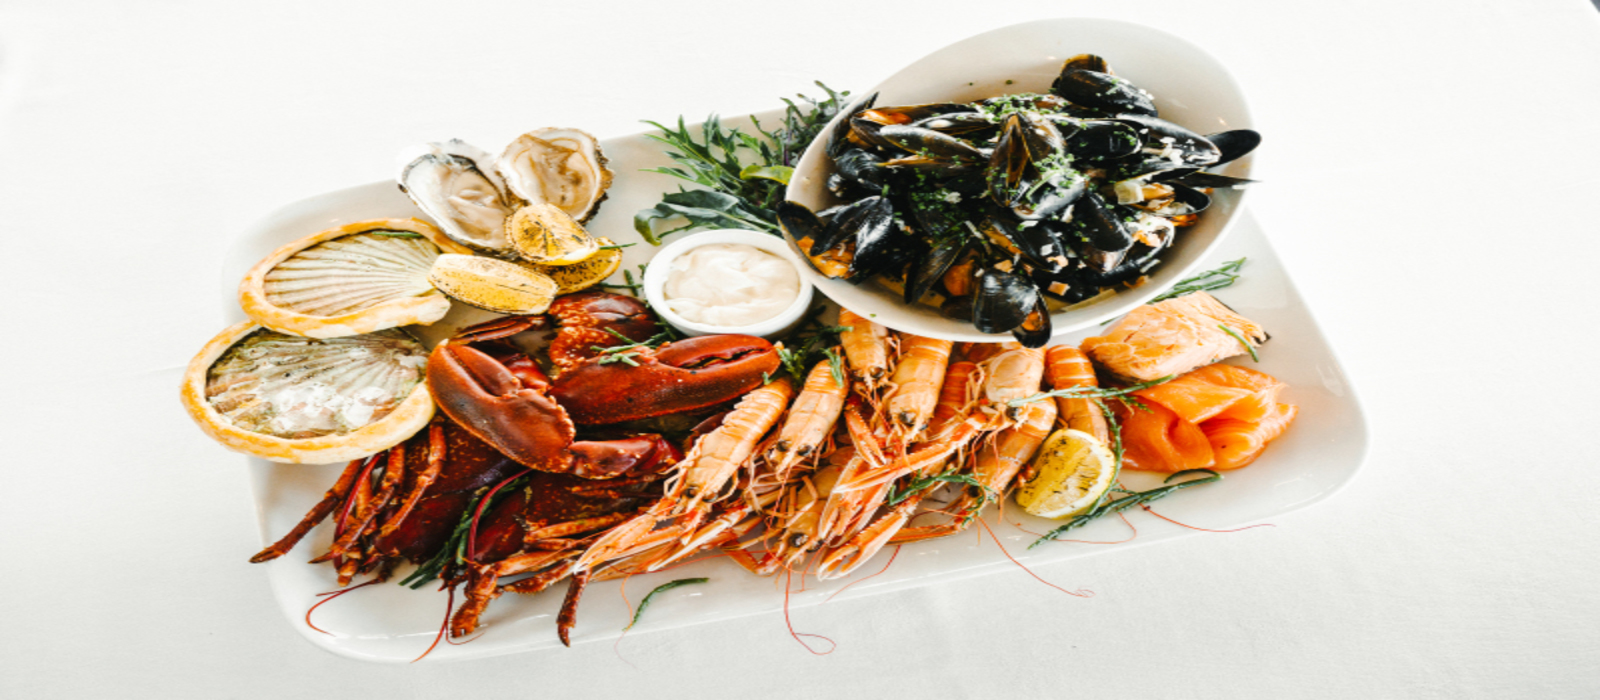 Pierhouse_Platter_1600x700